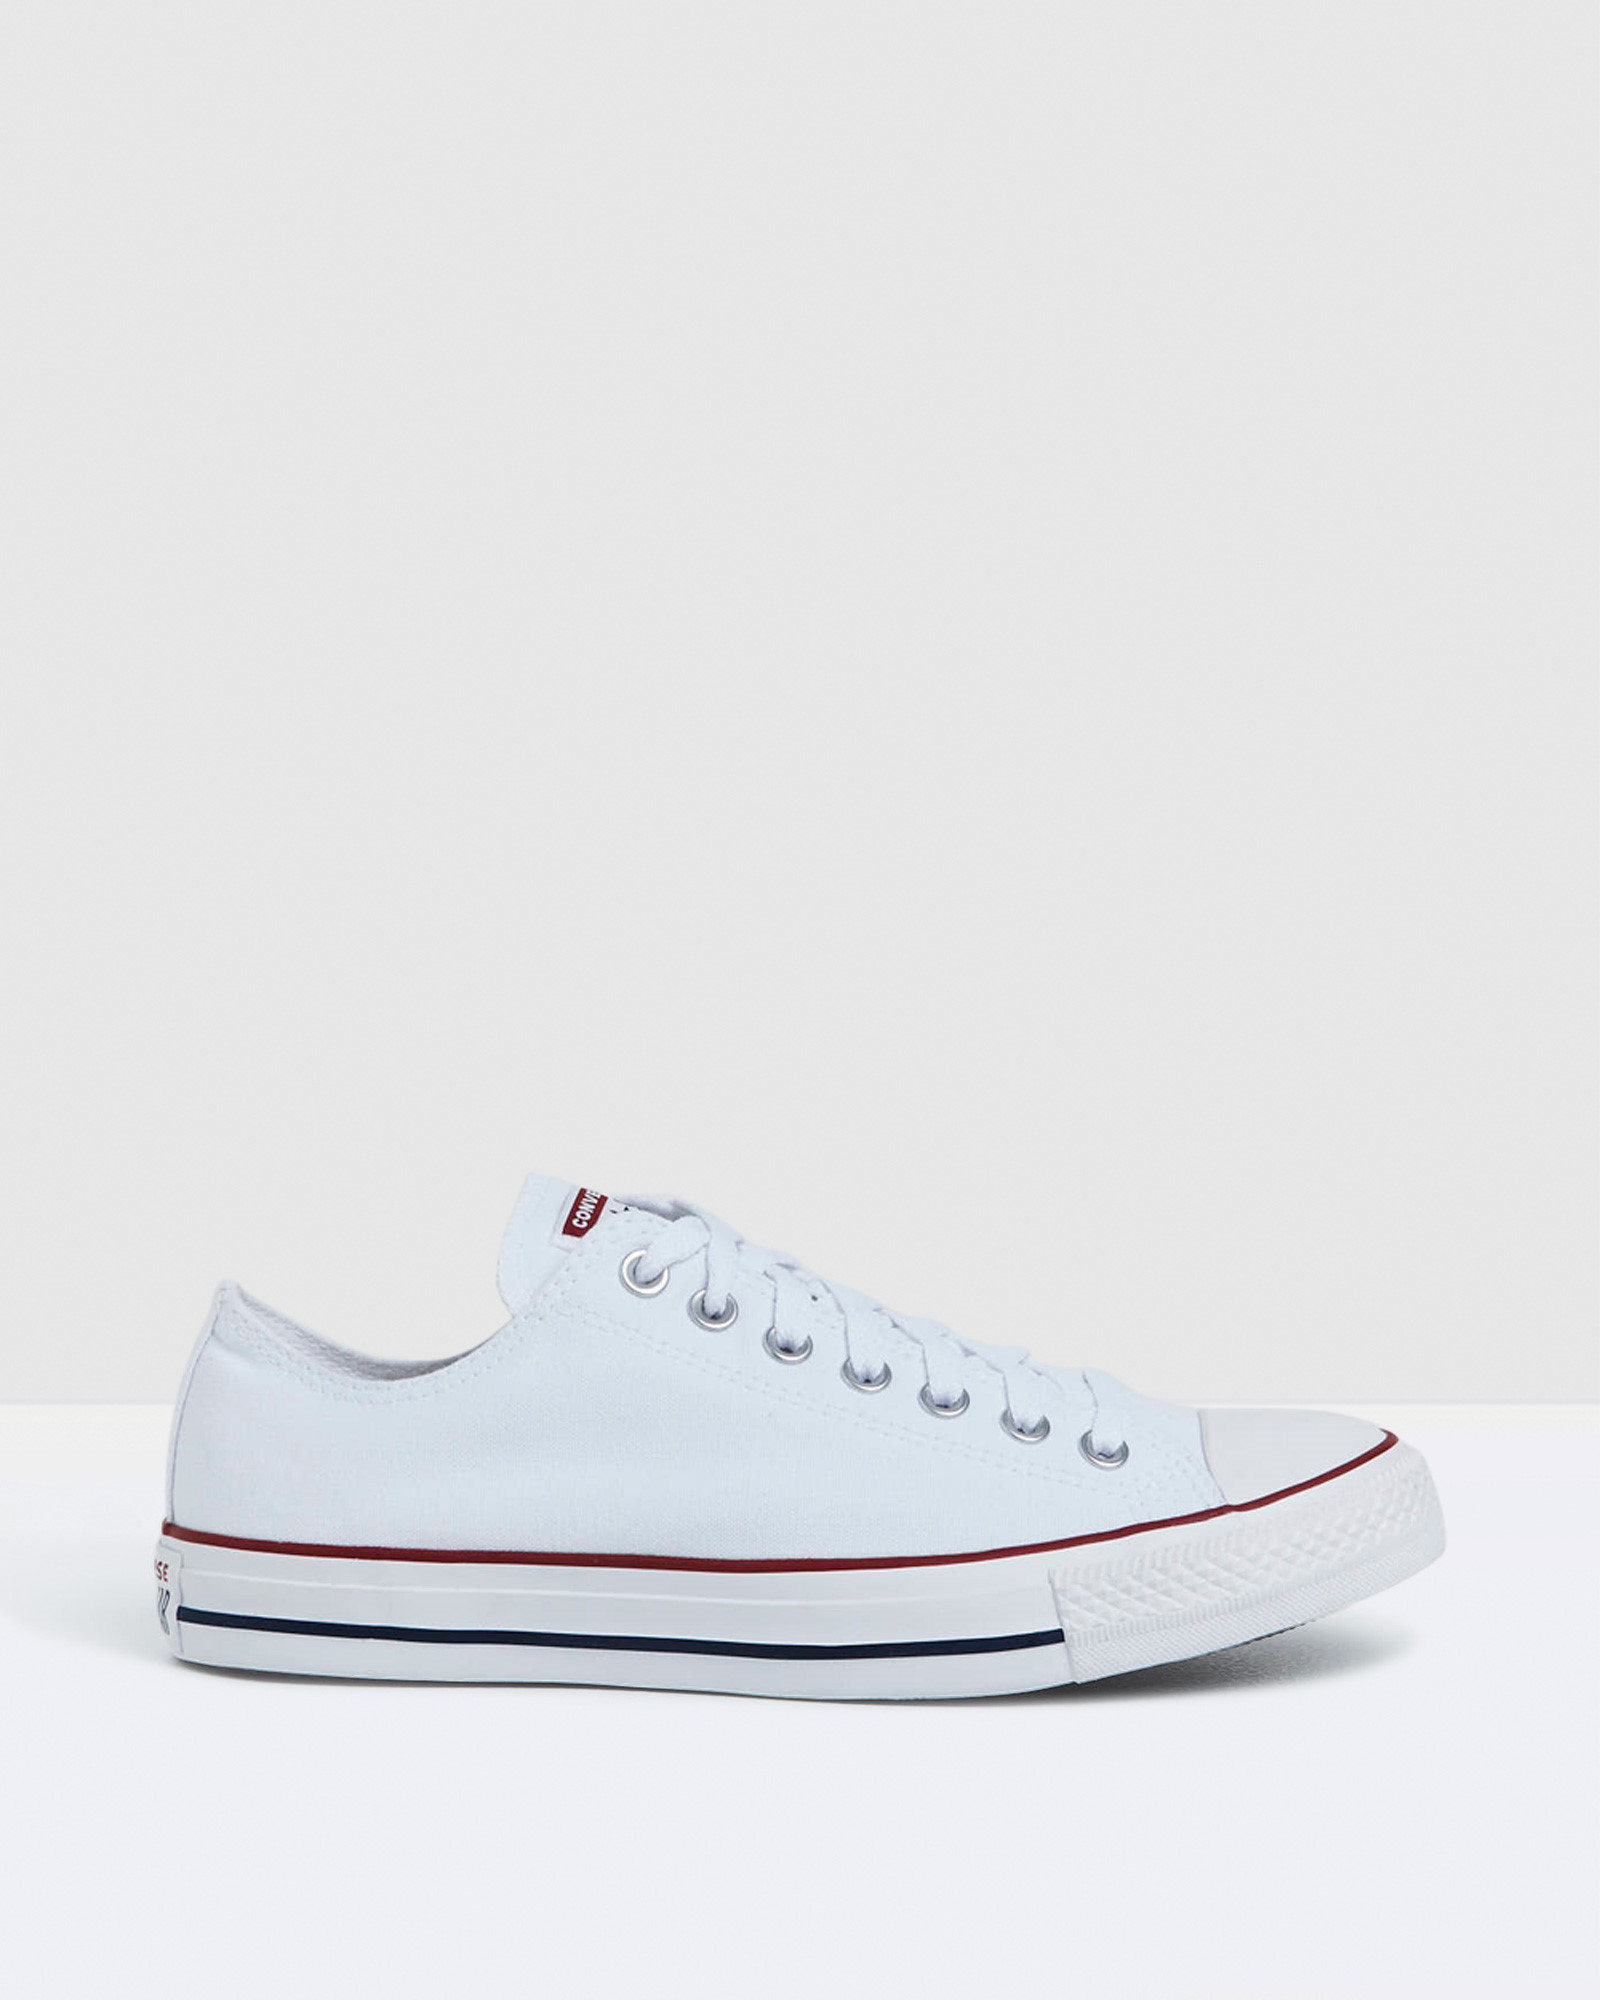 50cf0db270ef Converse Chuck Taylor All Star Dainty Leather Sneakers White ...